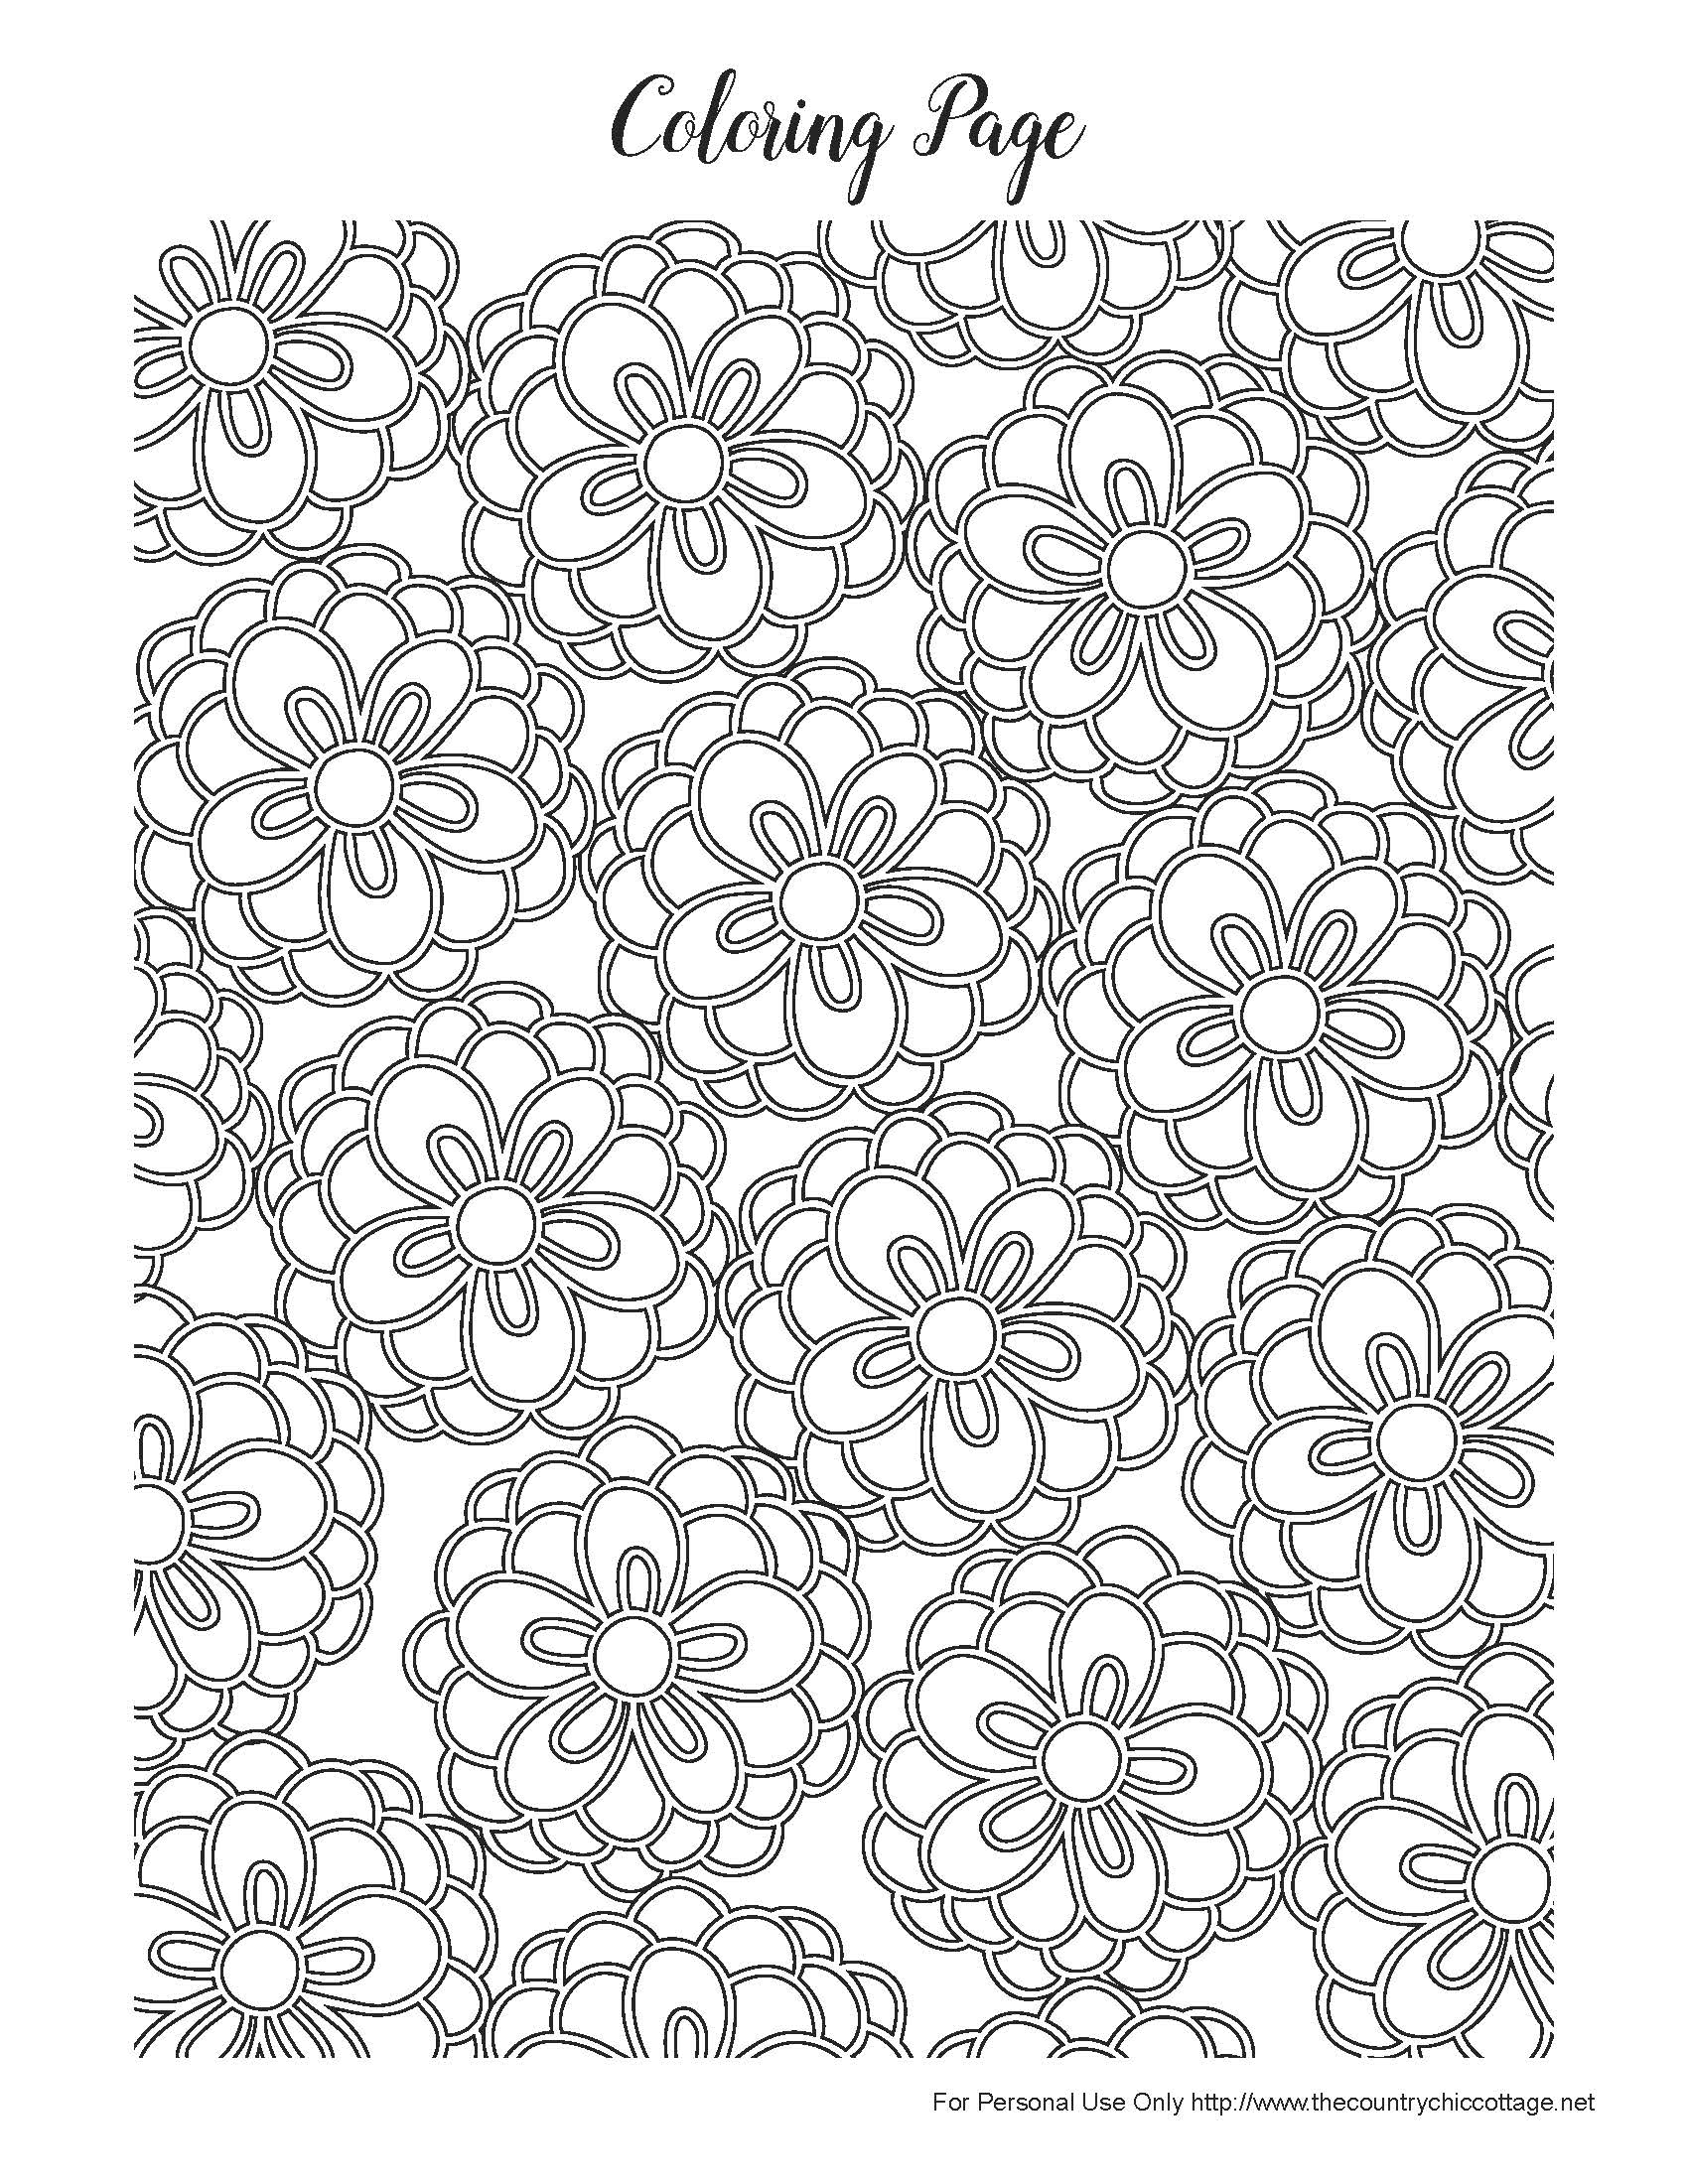 spring coloring pages for adults Free Spring Coloring Pages for Adults   The Country Chic Cottage spring coloring pages for adults